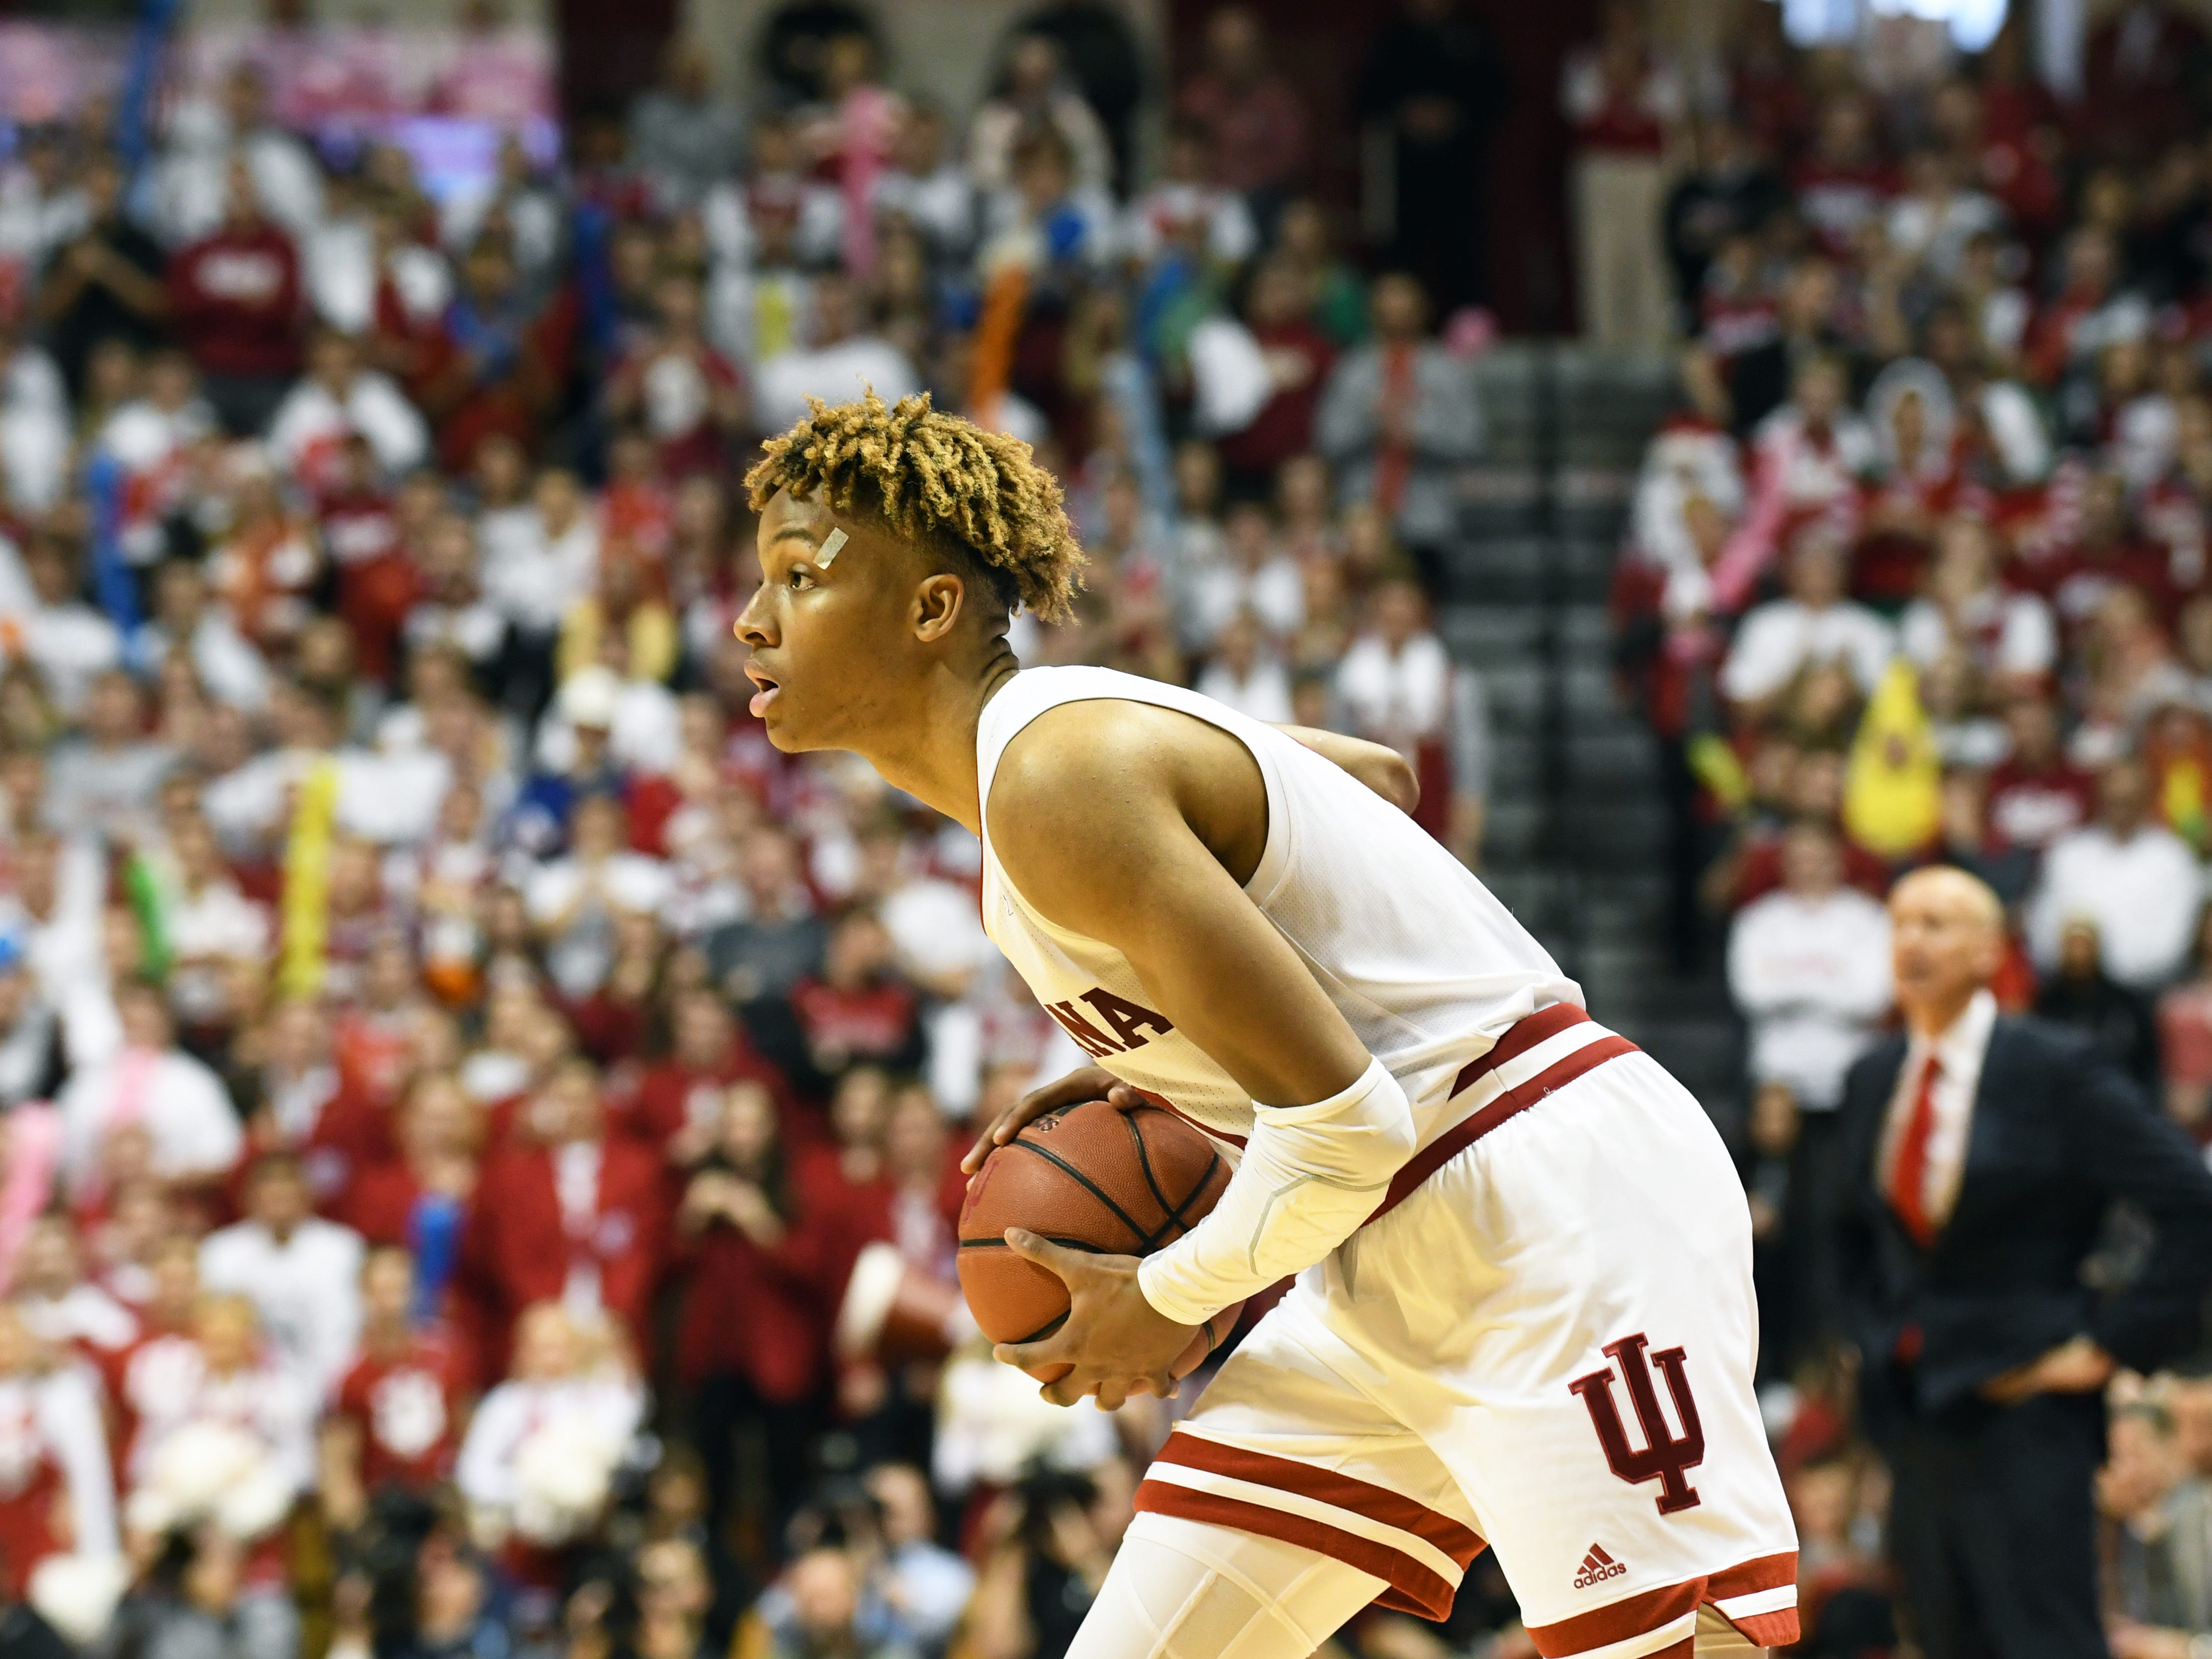 Indiana Hoosiers guard Romeo Langford (0) looks to pass the ball during the game against Louisville at Simon Skjodt Assembly Hall in Bloomington, Ind.